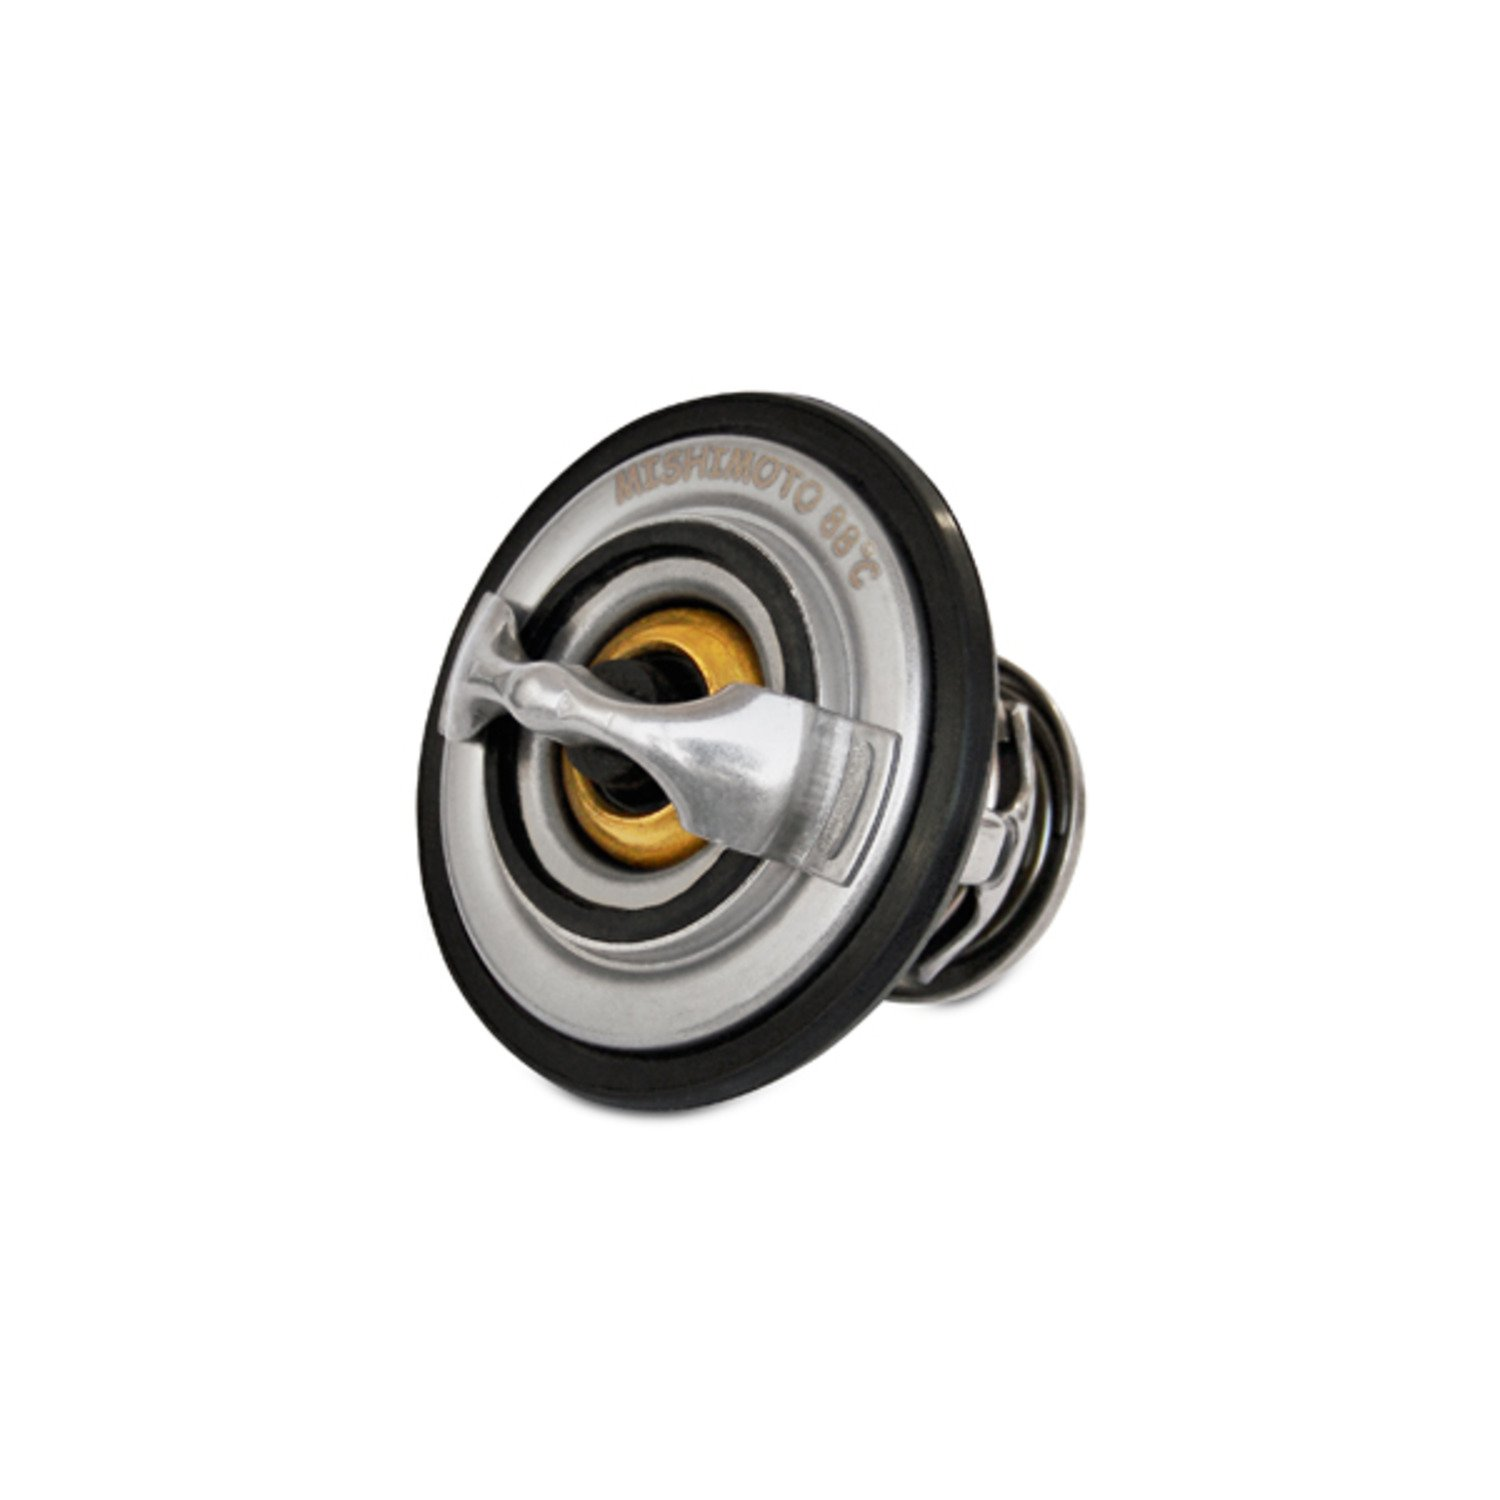 Mishimoto Mmts Chv 01dh 185 And 191 Degrees Racing 2009 Duramax Fuel Filter Thermostat With 66l Engine For Chevy 2500 Automotive